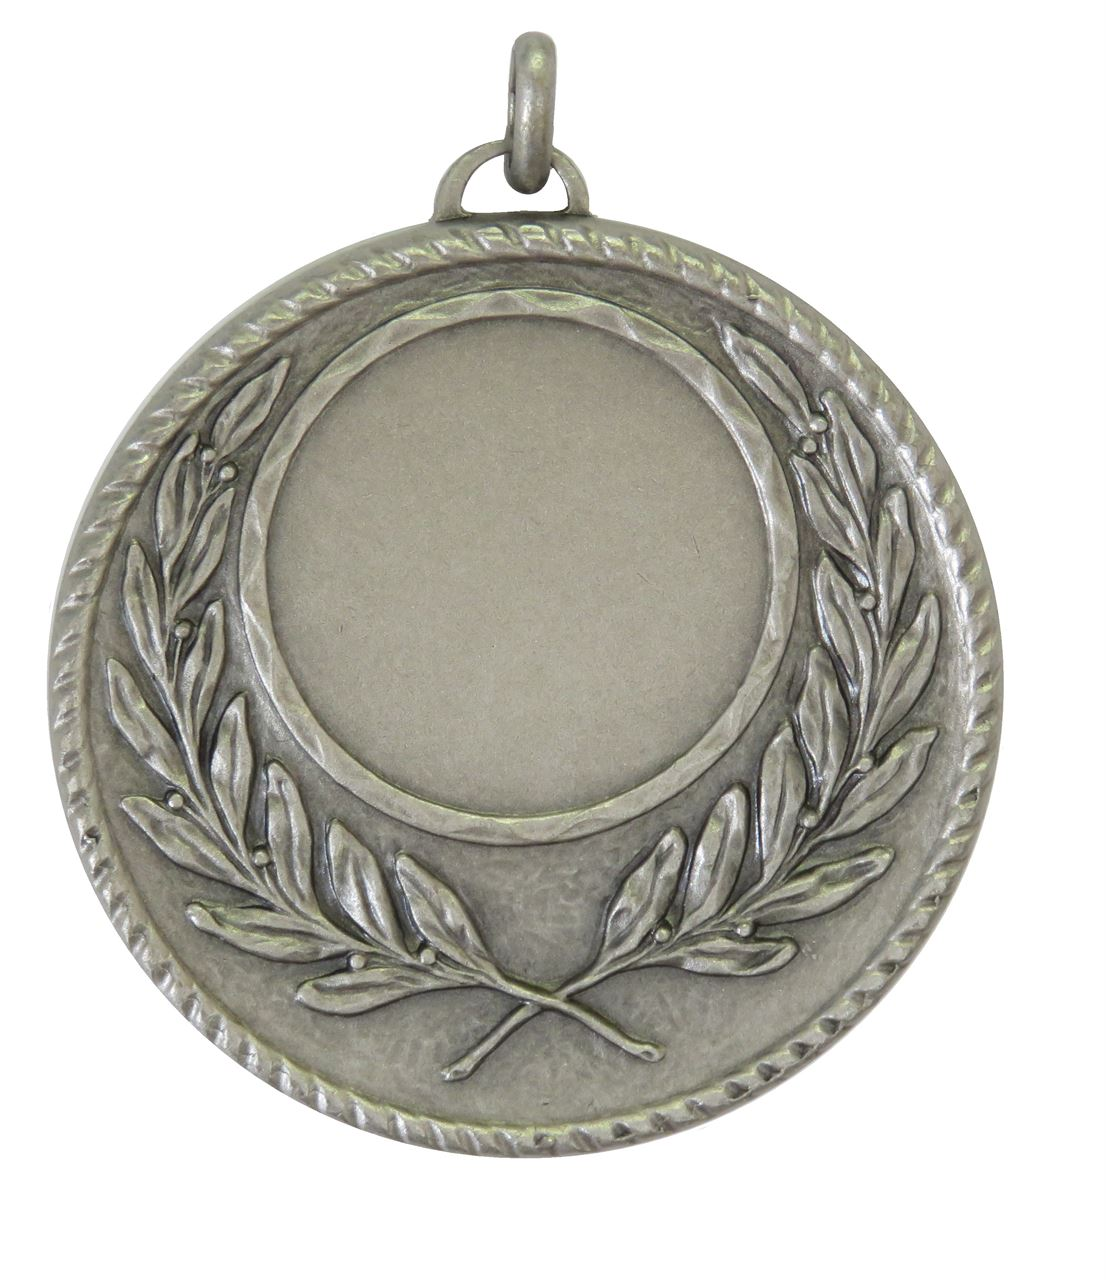 Silver Quality Wreath Medal (size: 50mm) - 5605E